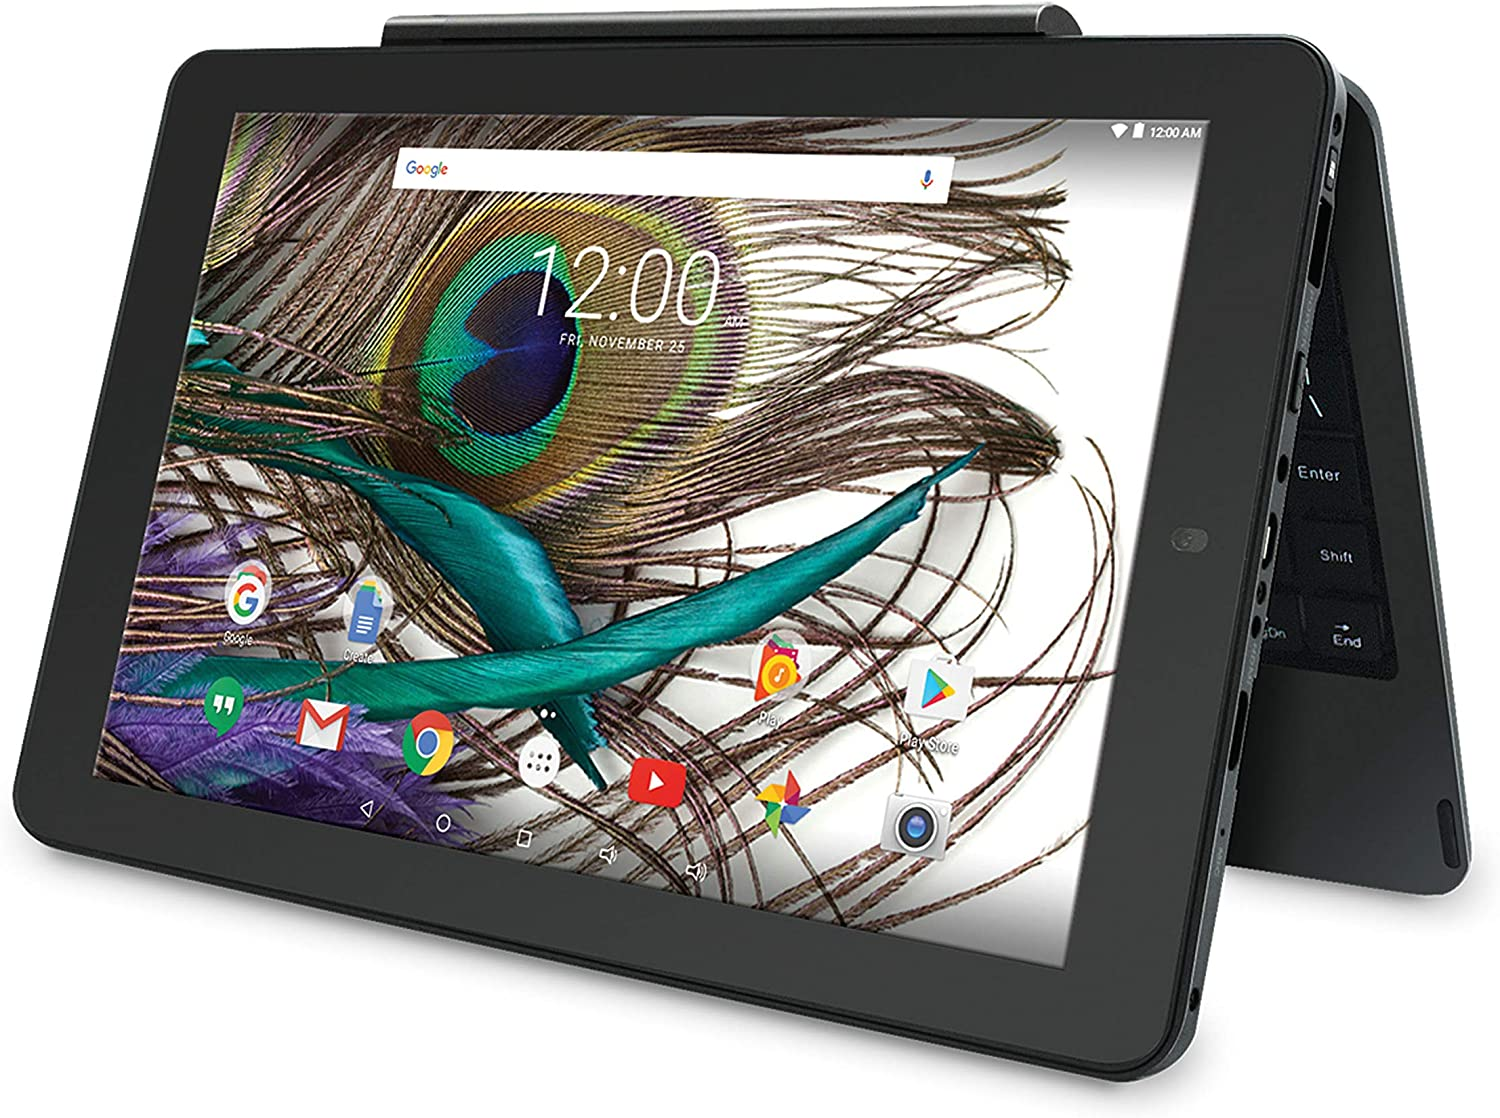 Amazon Com 2019 Rca Viking Pro 10 1 Touchscreen 2 In 1 Tablet Laptop Quad Core Processor 1gb Ram 32gb Ssd Wifi Hdmi Detachable Keyboard Android 5 0 Os Charcoal Computers Accessories